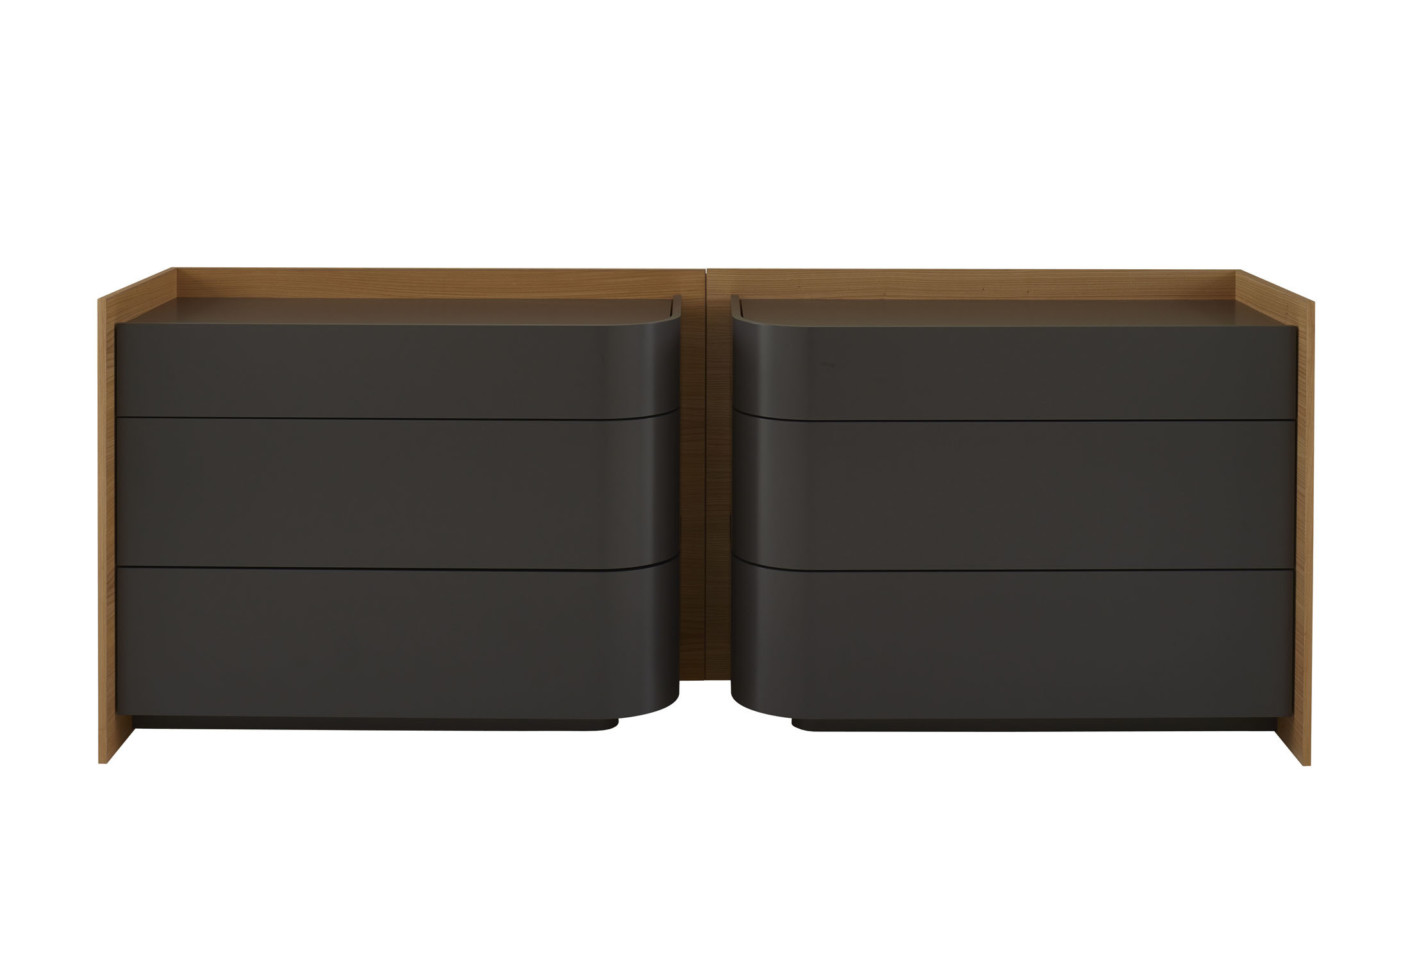 Entr 200 Ves Chest Of Drawers By Ligne Roset Stylepark